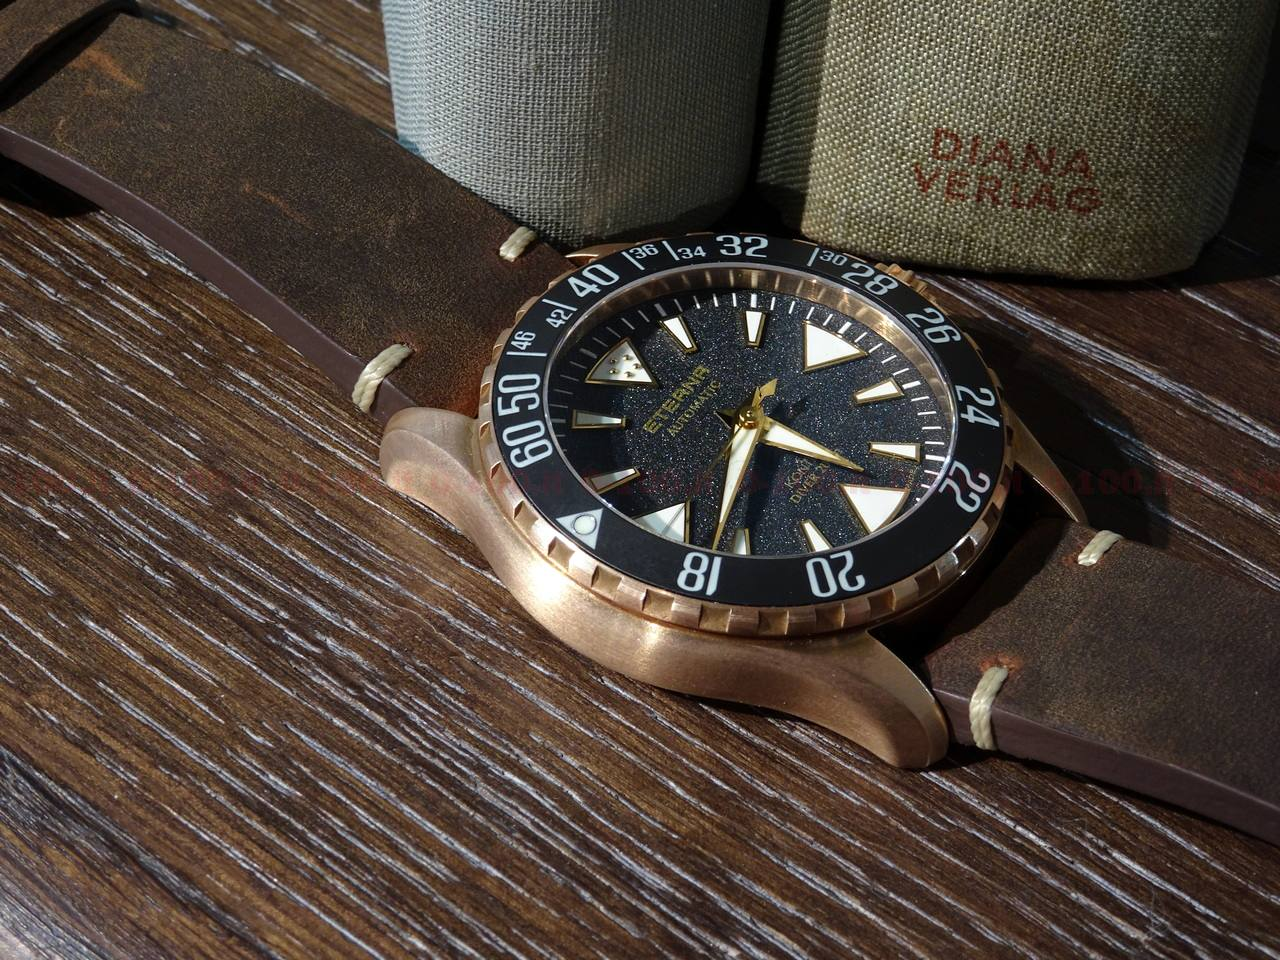 baselworld-2017-ETERNA KONTIKI BRONZE MANUFACTURE LIMITED EDITION REF. 1291.78.49.1422-prezzo-price_0-1007